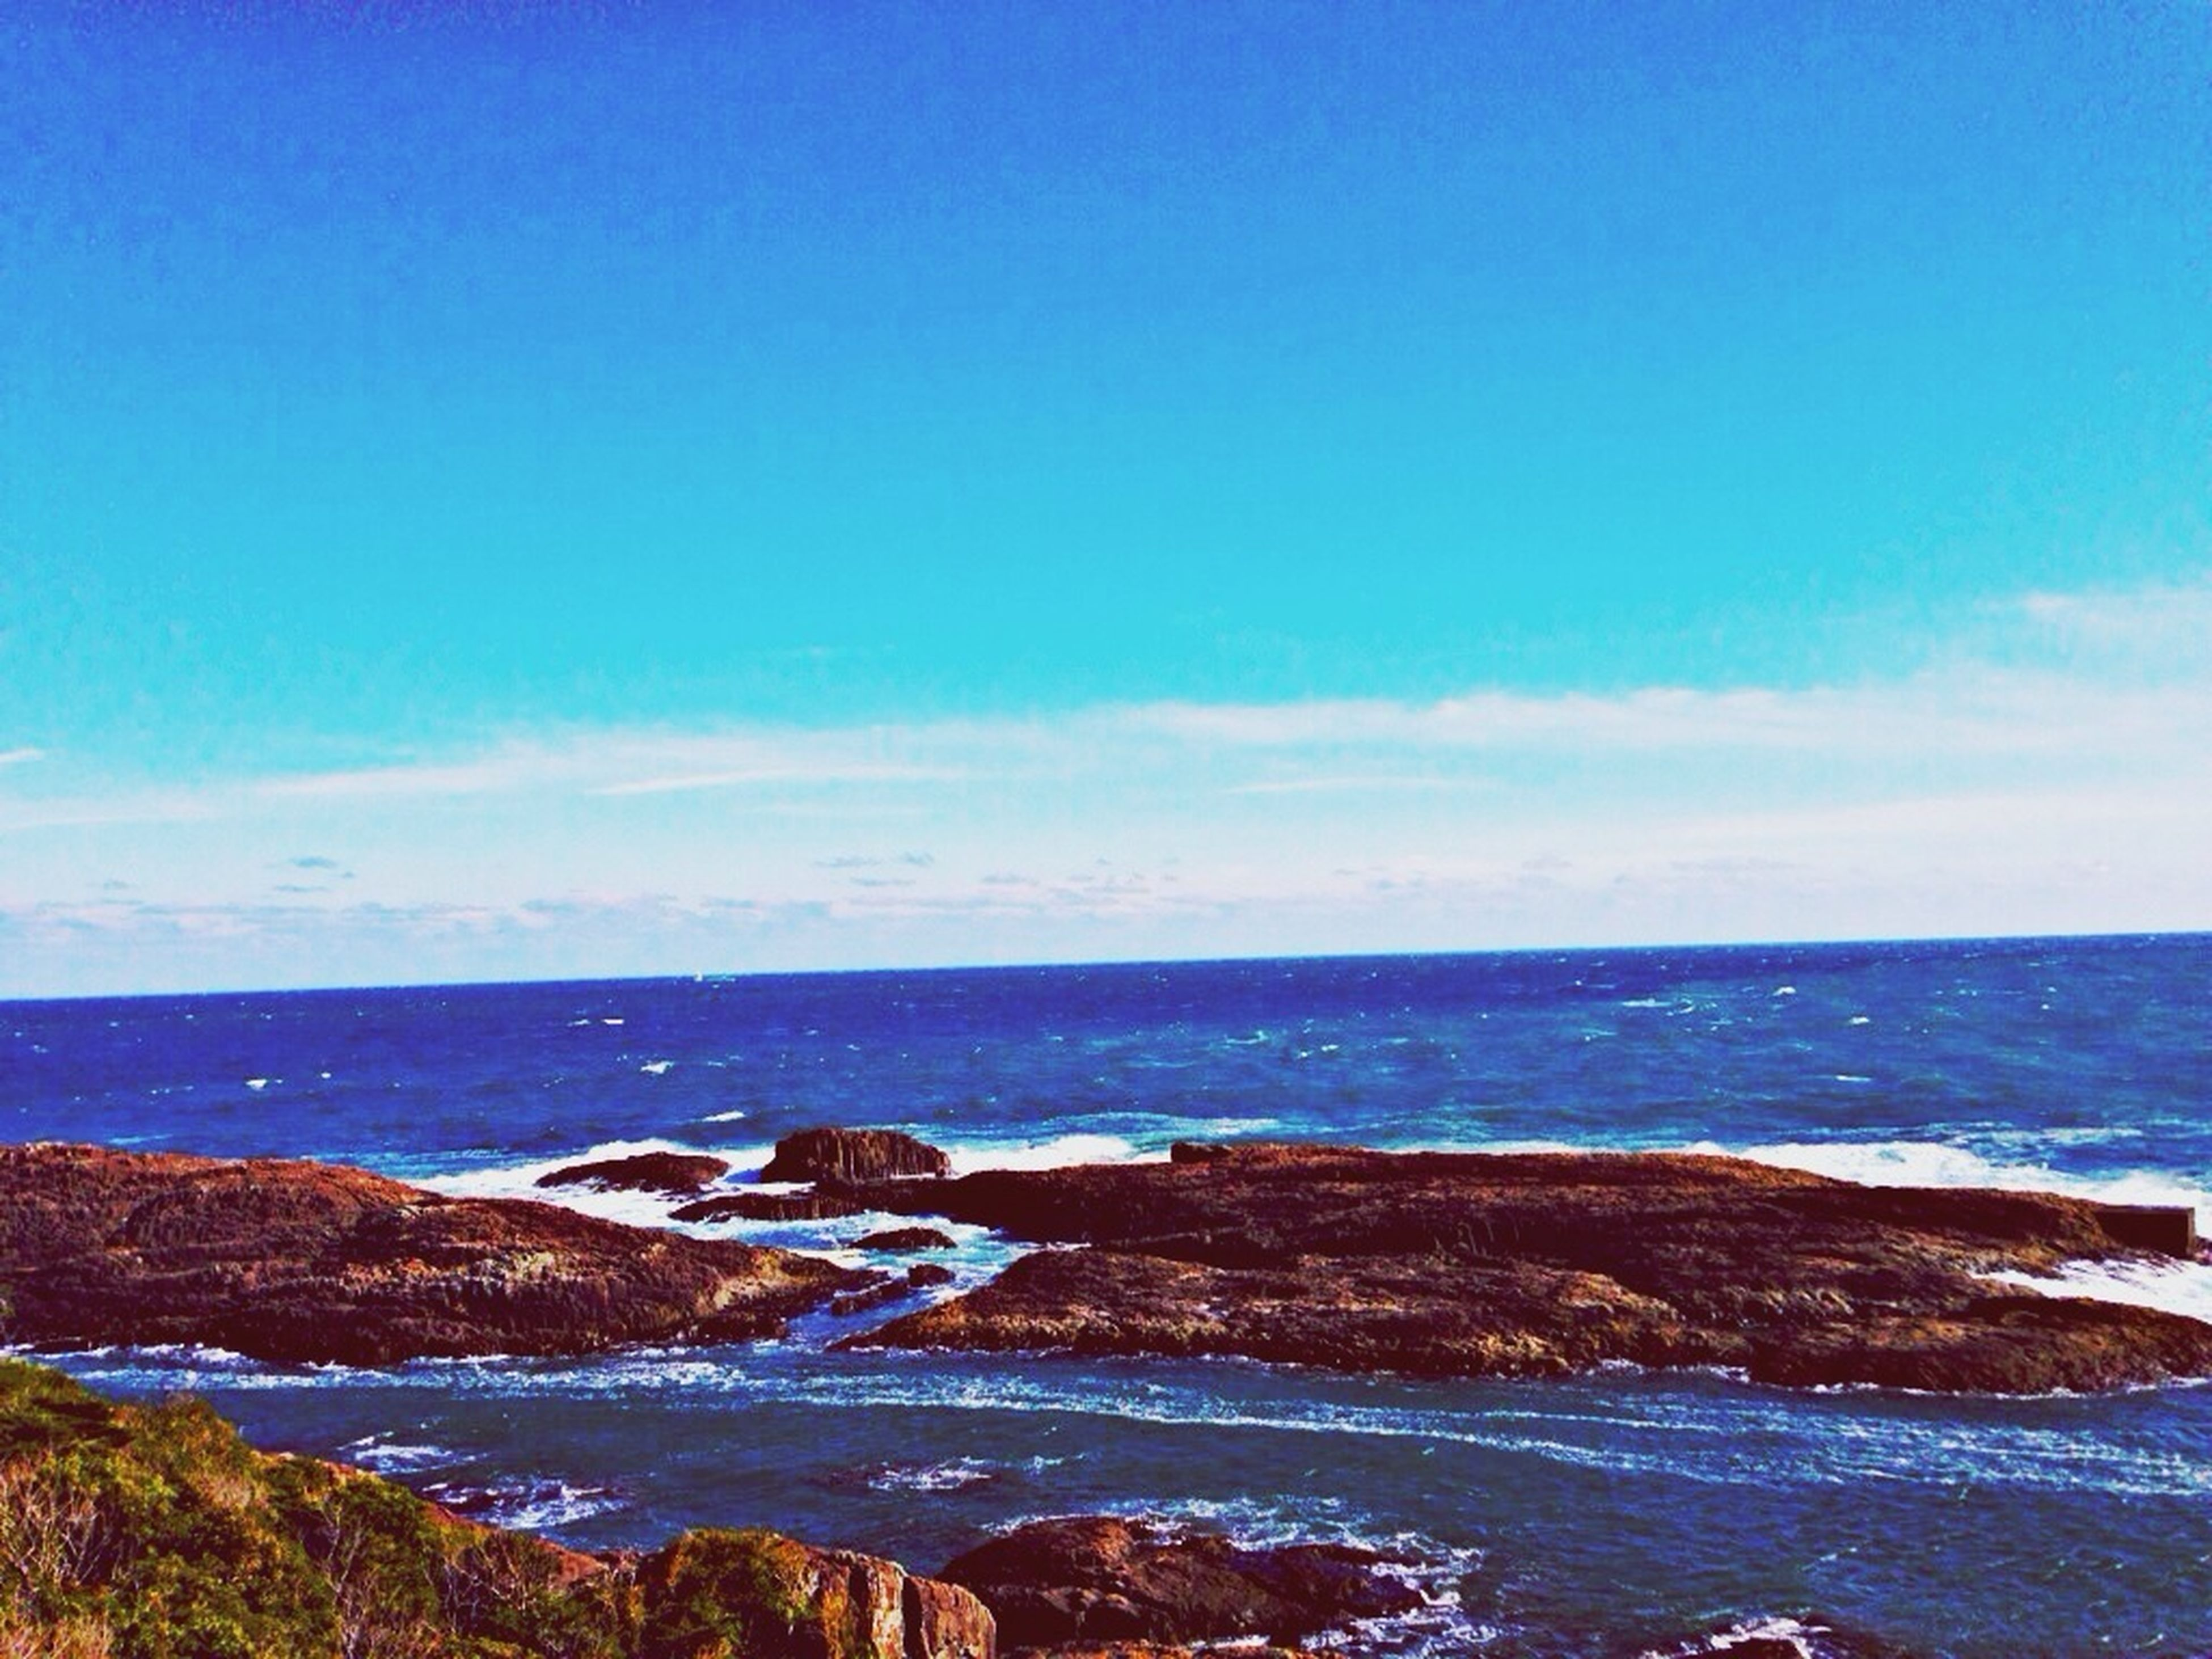 sea, horizon over water, water, scenics, sky, blue, tranquil scene, beauty in nature, tranquility, beach, nature, shore, idyllic, cloud - sky, rock - object, cloud, coastline, outdoors, seascape, wave